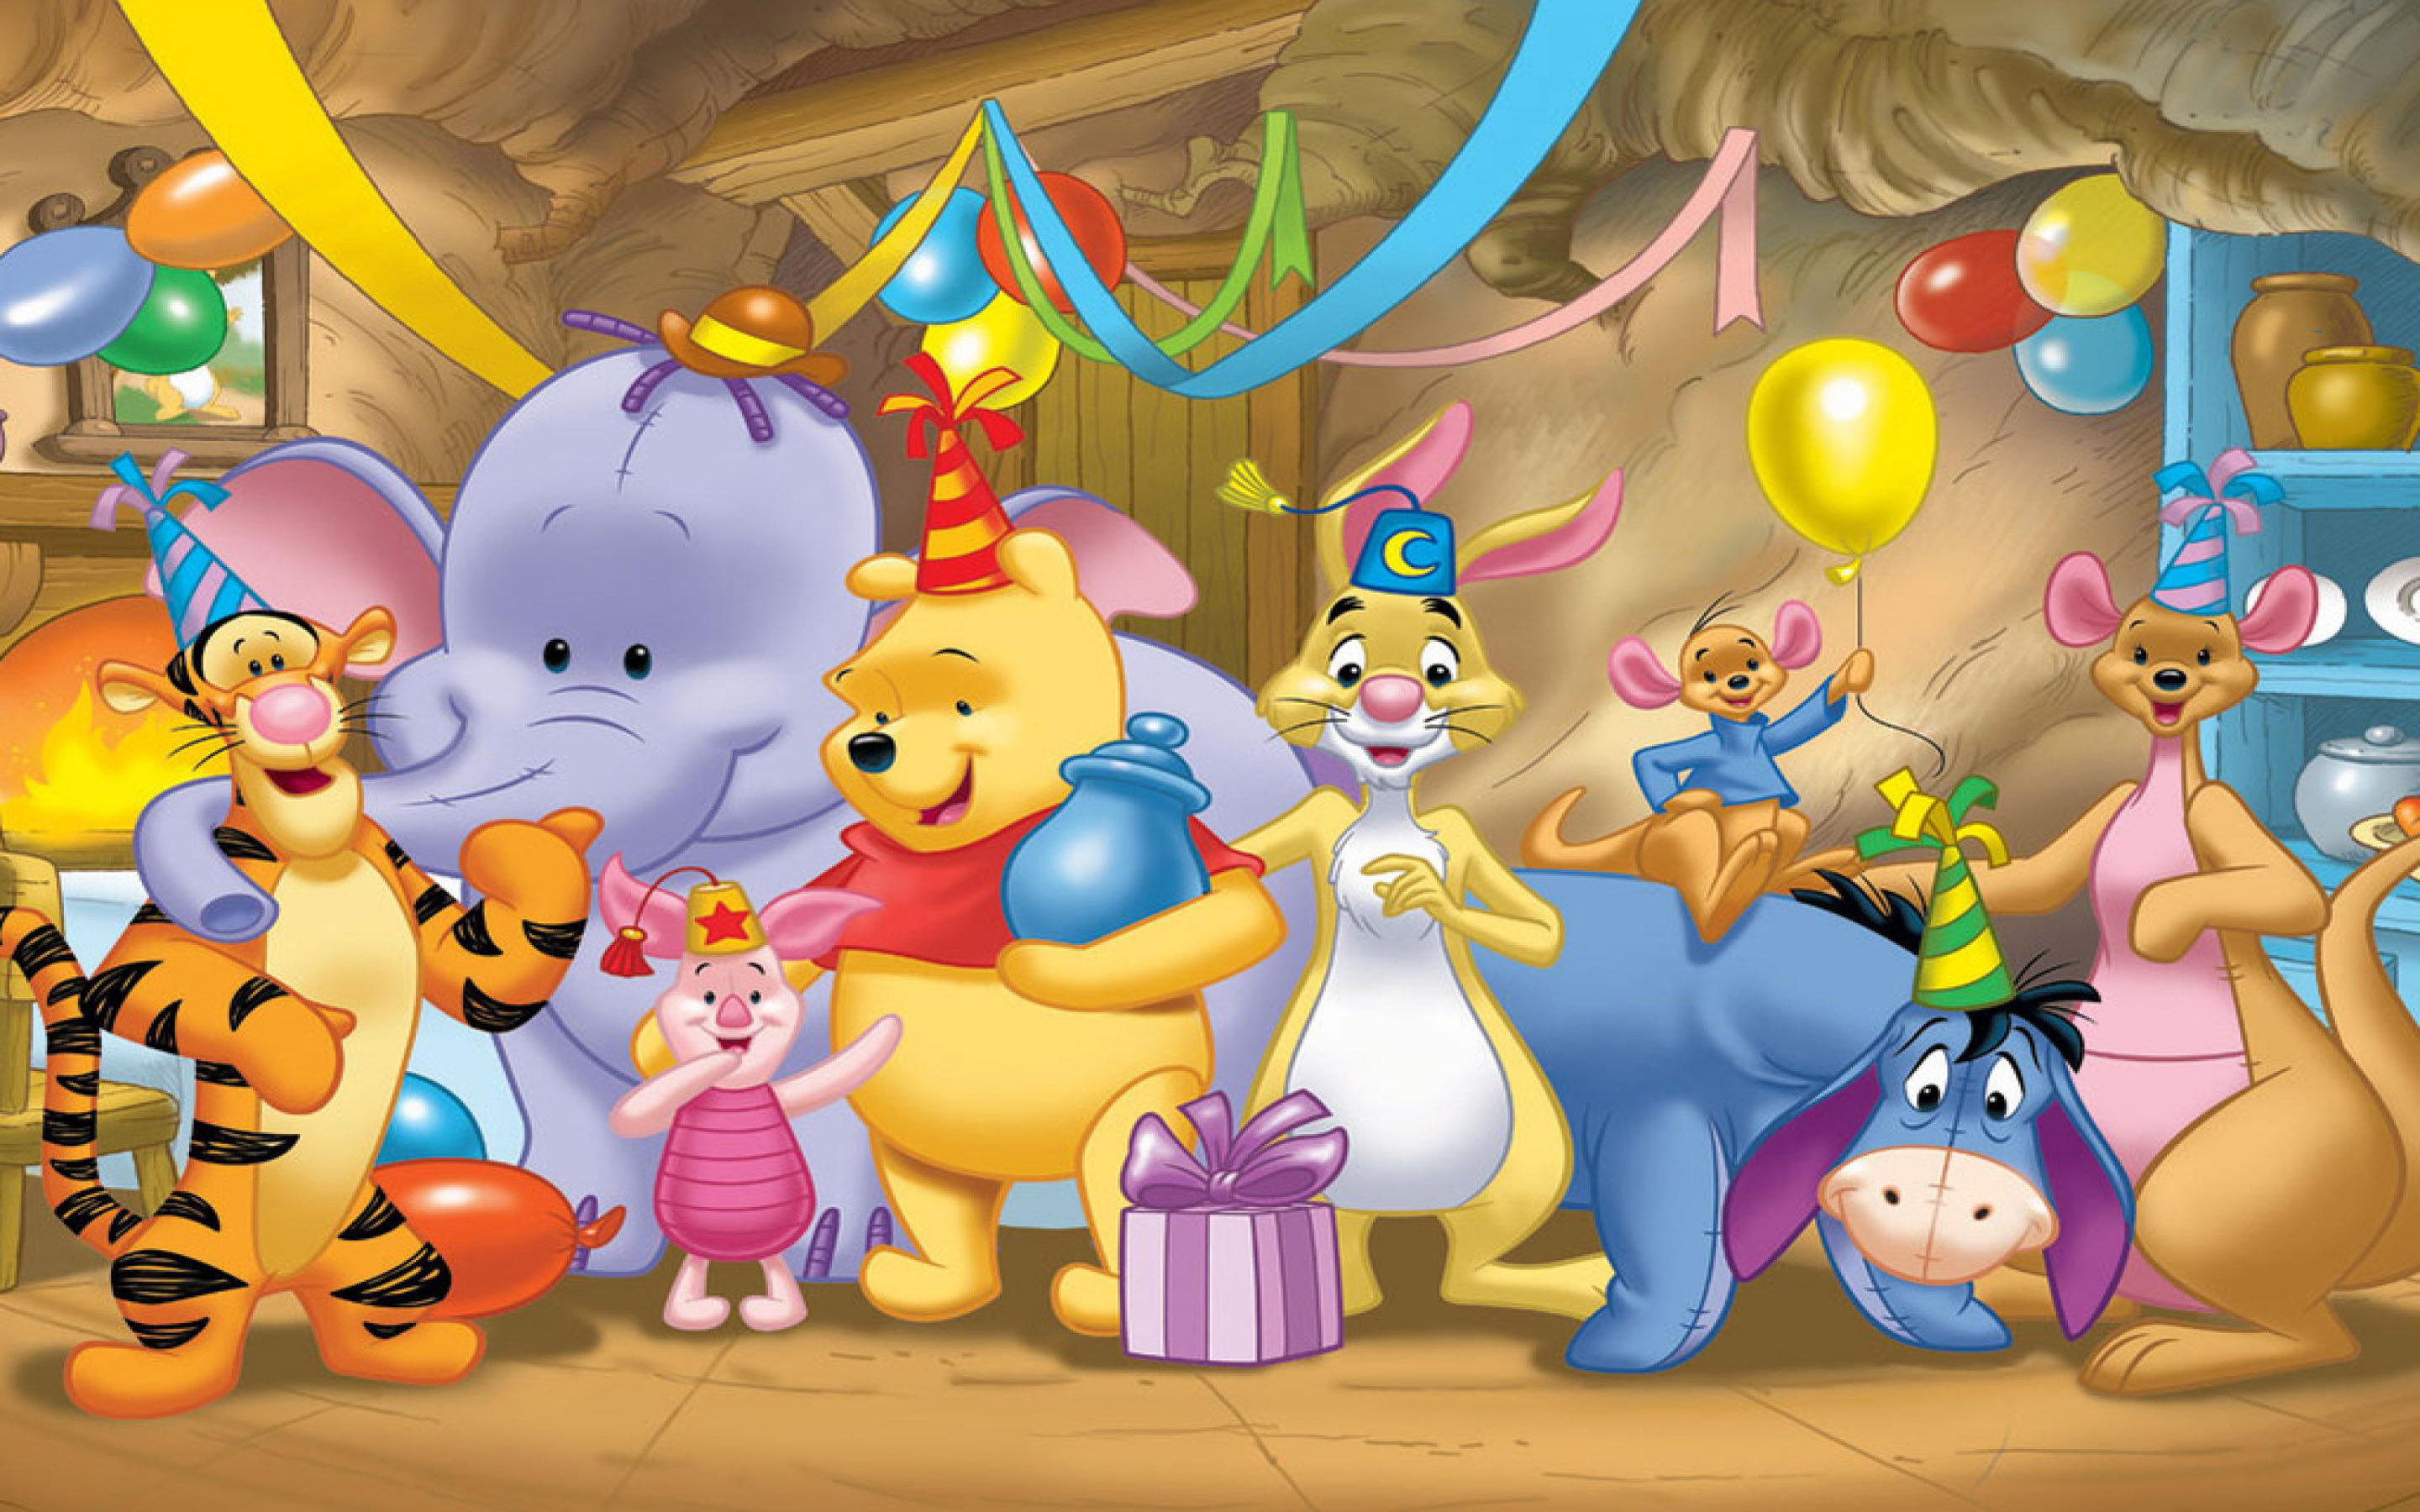 Cute Lock Screen Wallpapers For Iphone Winnie The Pooh Happy Birthday Celebration Birthday Gifts